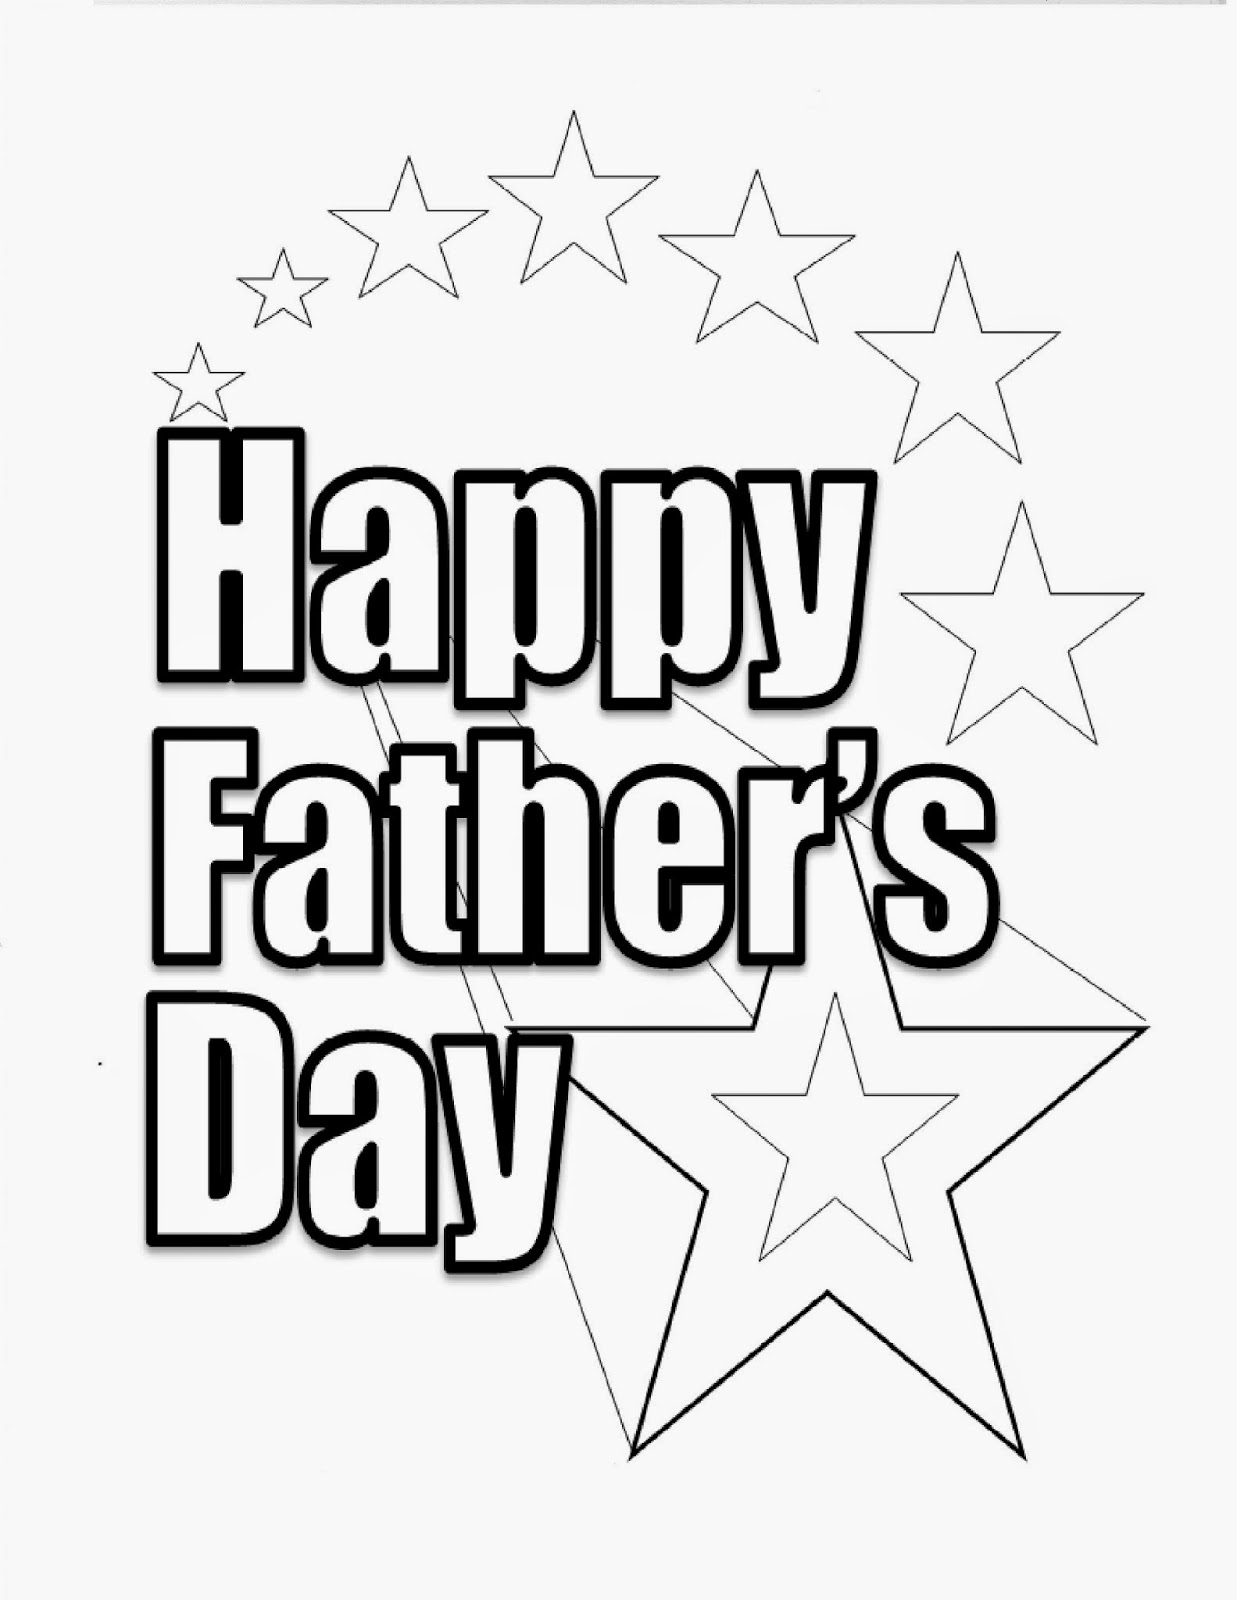 Free Fathers Day Coloring Pages At Getdrawings Com Free For